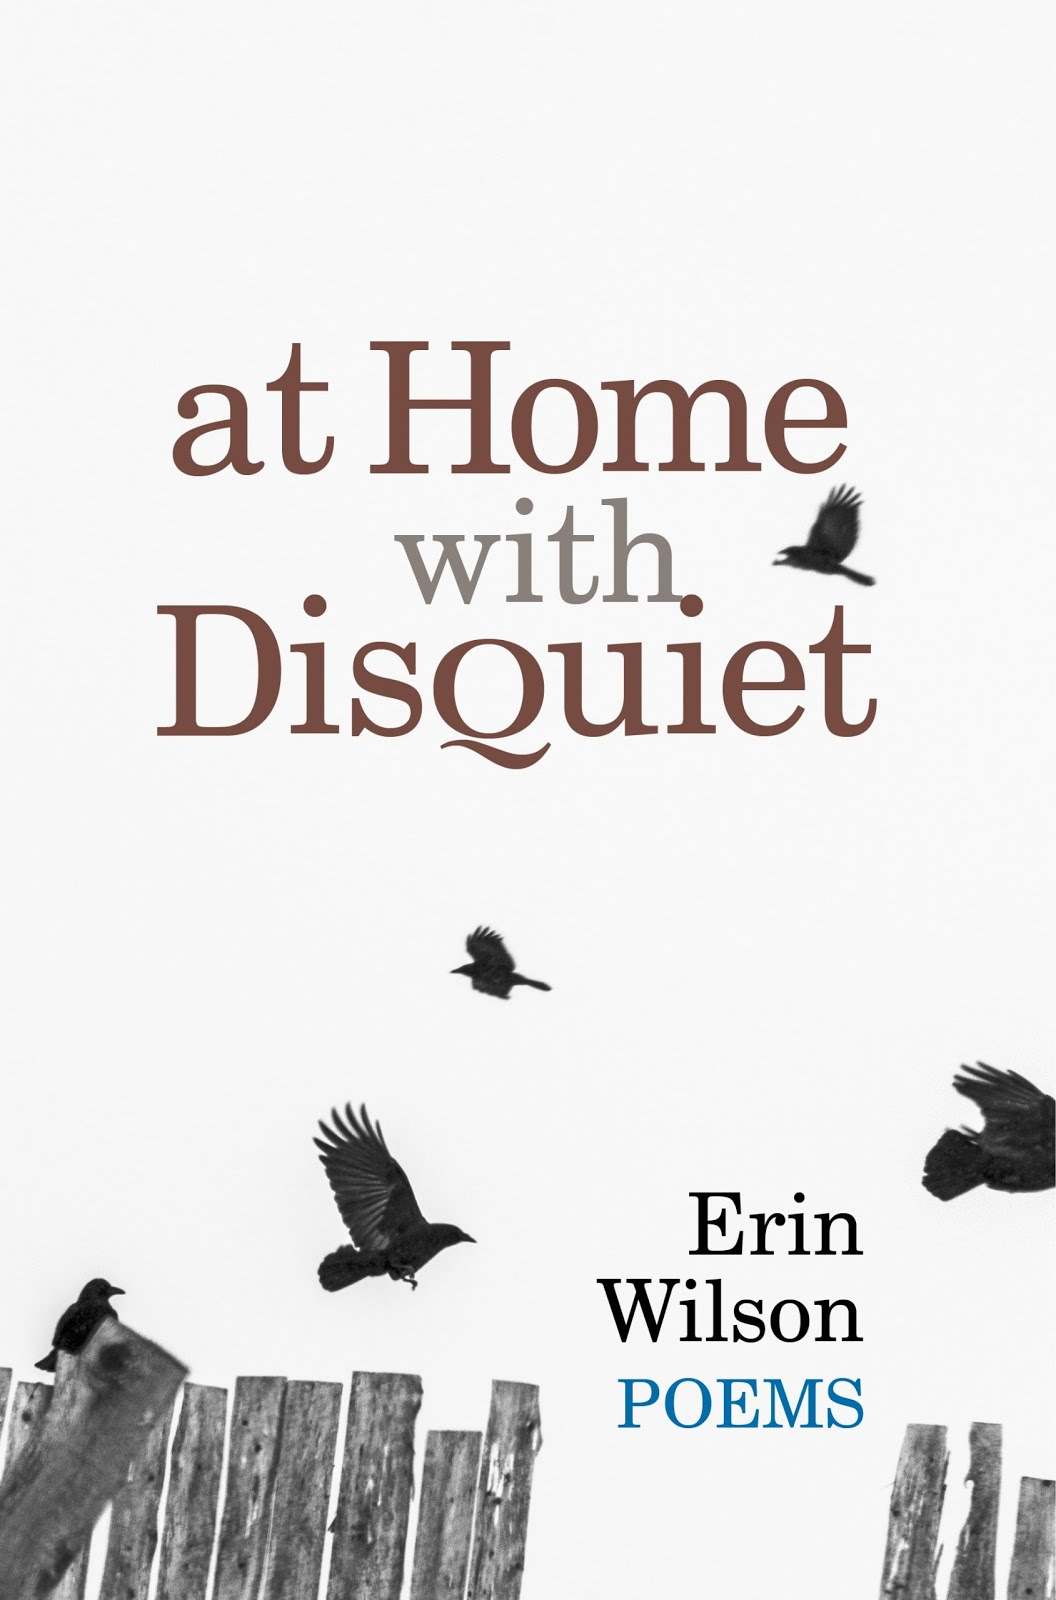 https://www.amazon.com/At-Home-Disquiet-Erin-Wilson/dp/1939530105/ref=sr_1_1?keywords=at+home+with+disquiet&qid=1581772339&sr=8-1